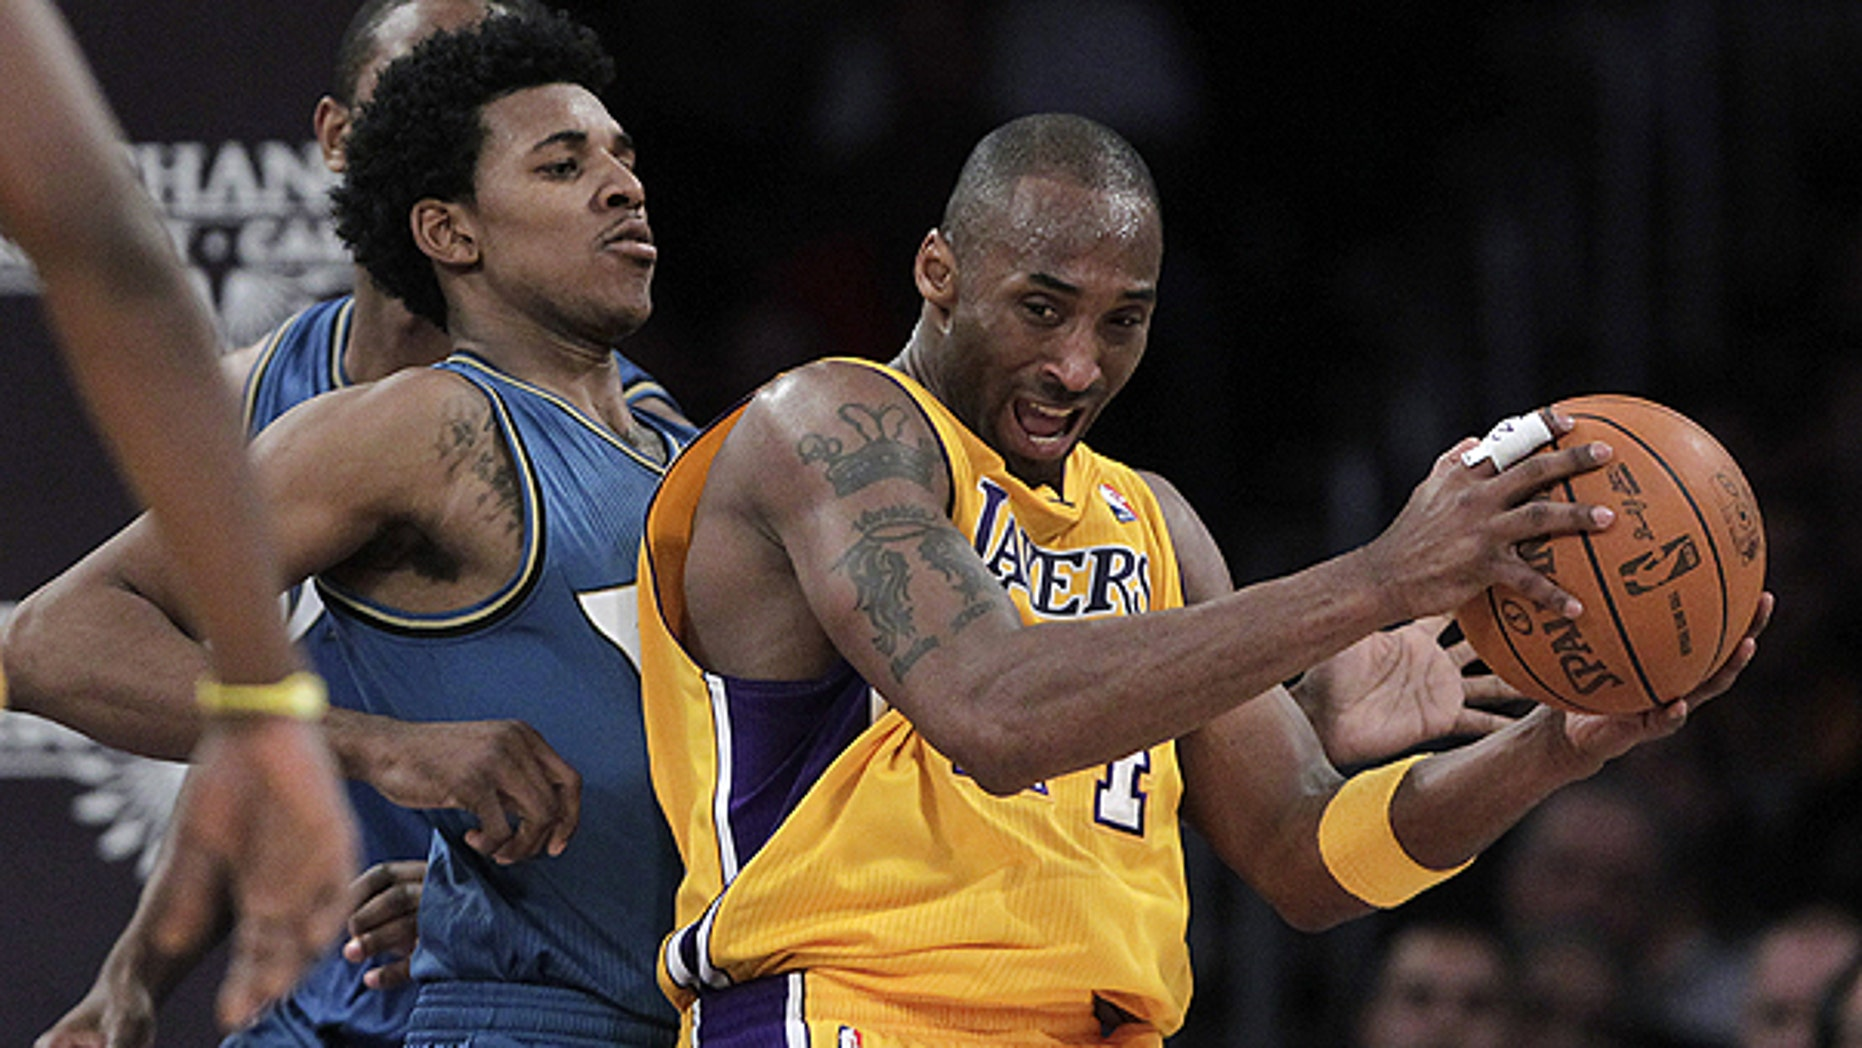 Dec. 7: Los Angeles Lakers guard Kobe Bryant, right, is pressured by Washington Wizards guard Nick Young during the first half of an NBA basketball game in Los Angeles.